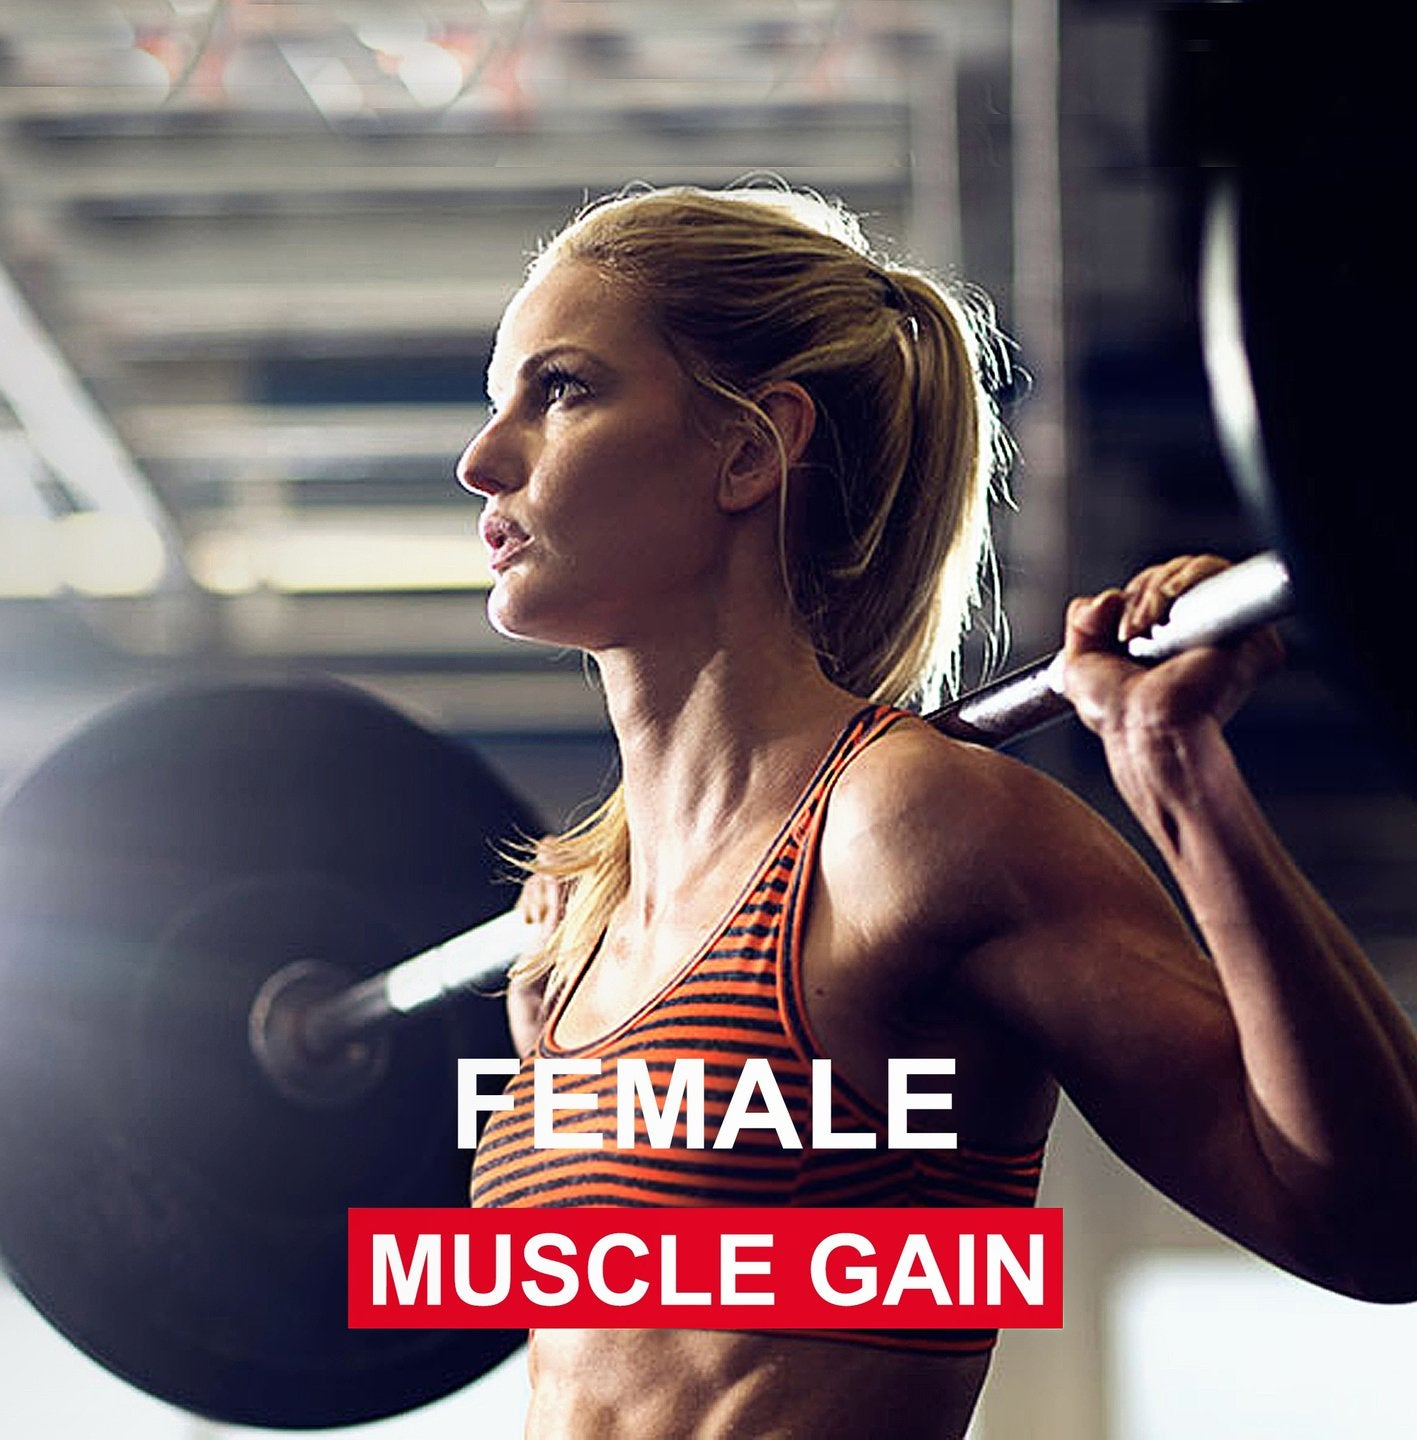 NUTRITION - FEMALE MUSCLE  gain (- 20%)